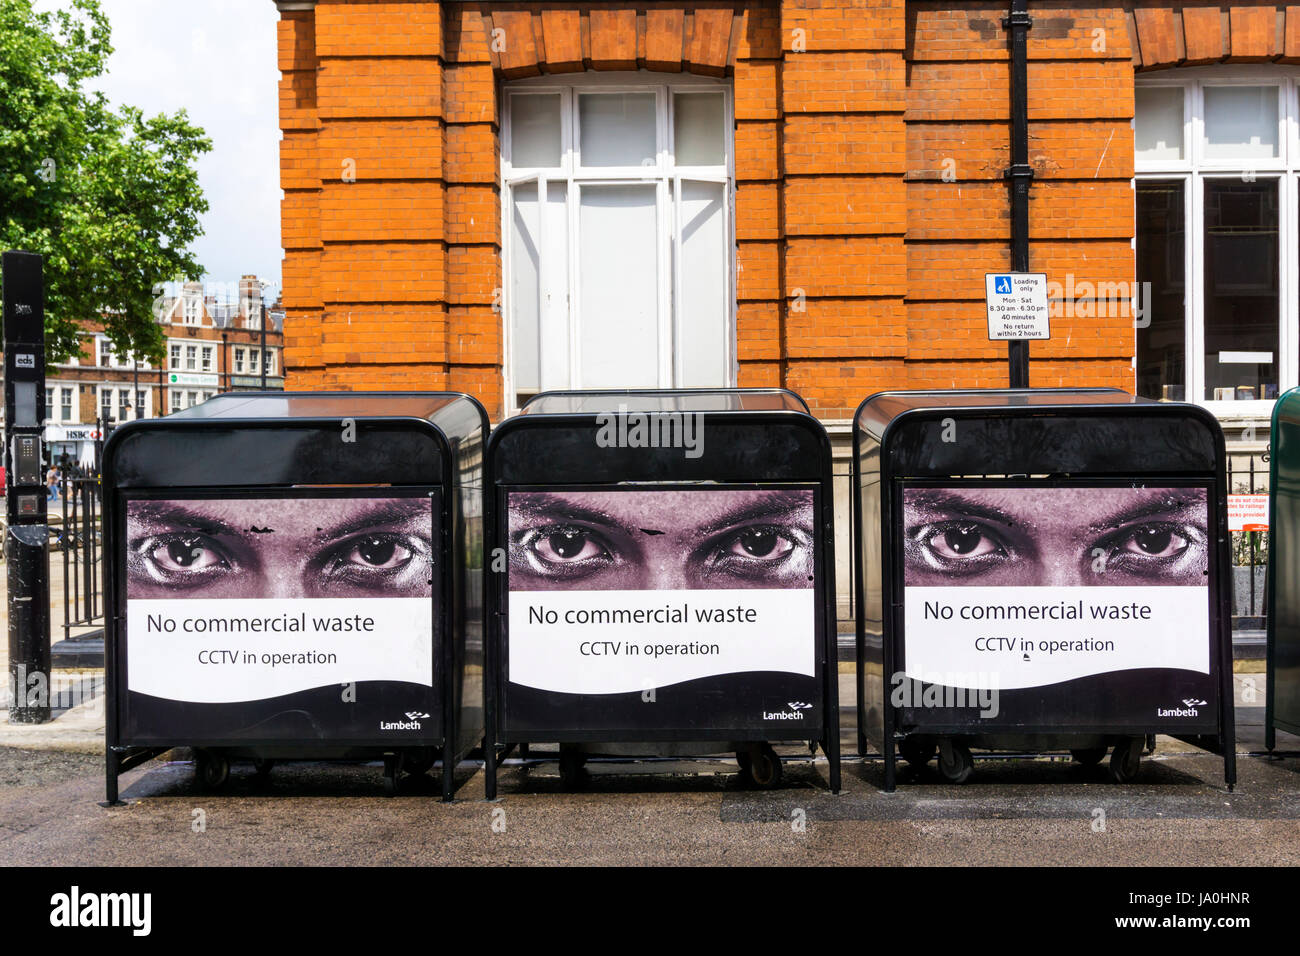 Signs warn against putting commercial waste in public rubbish bins. - Stock Image